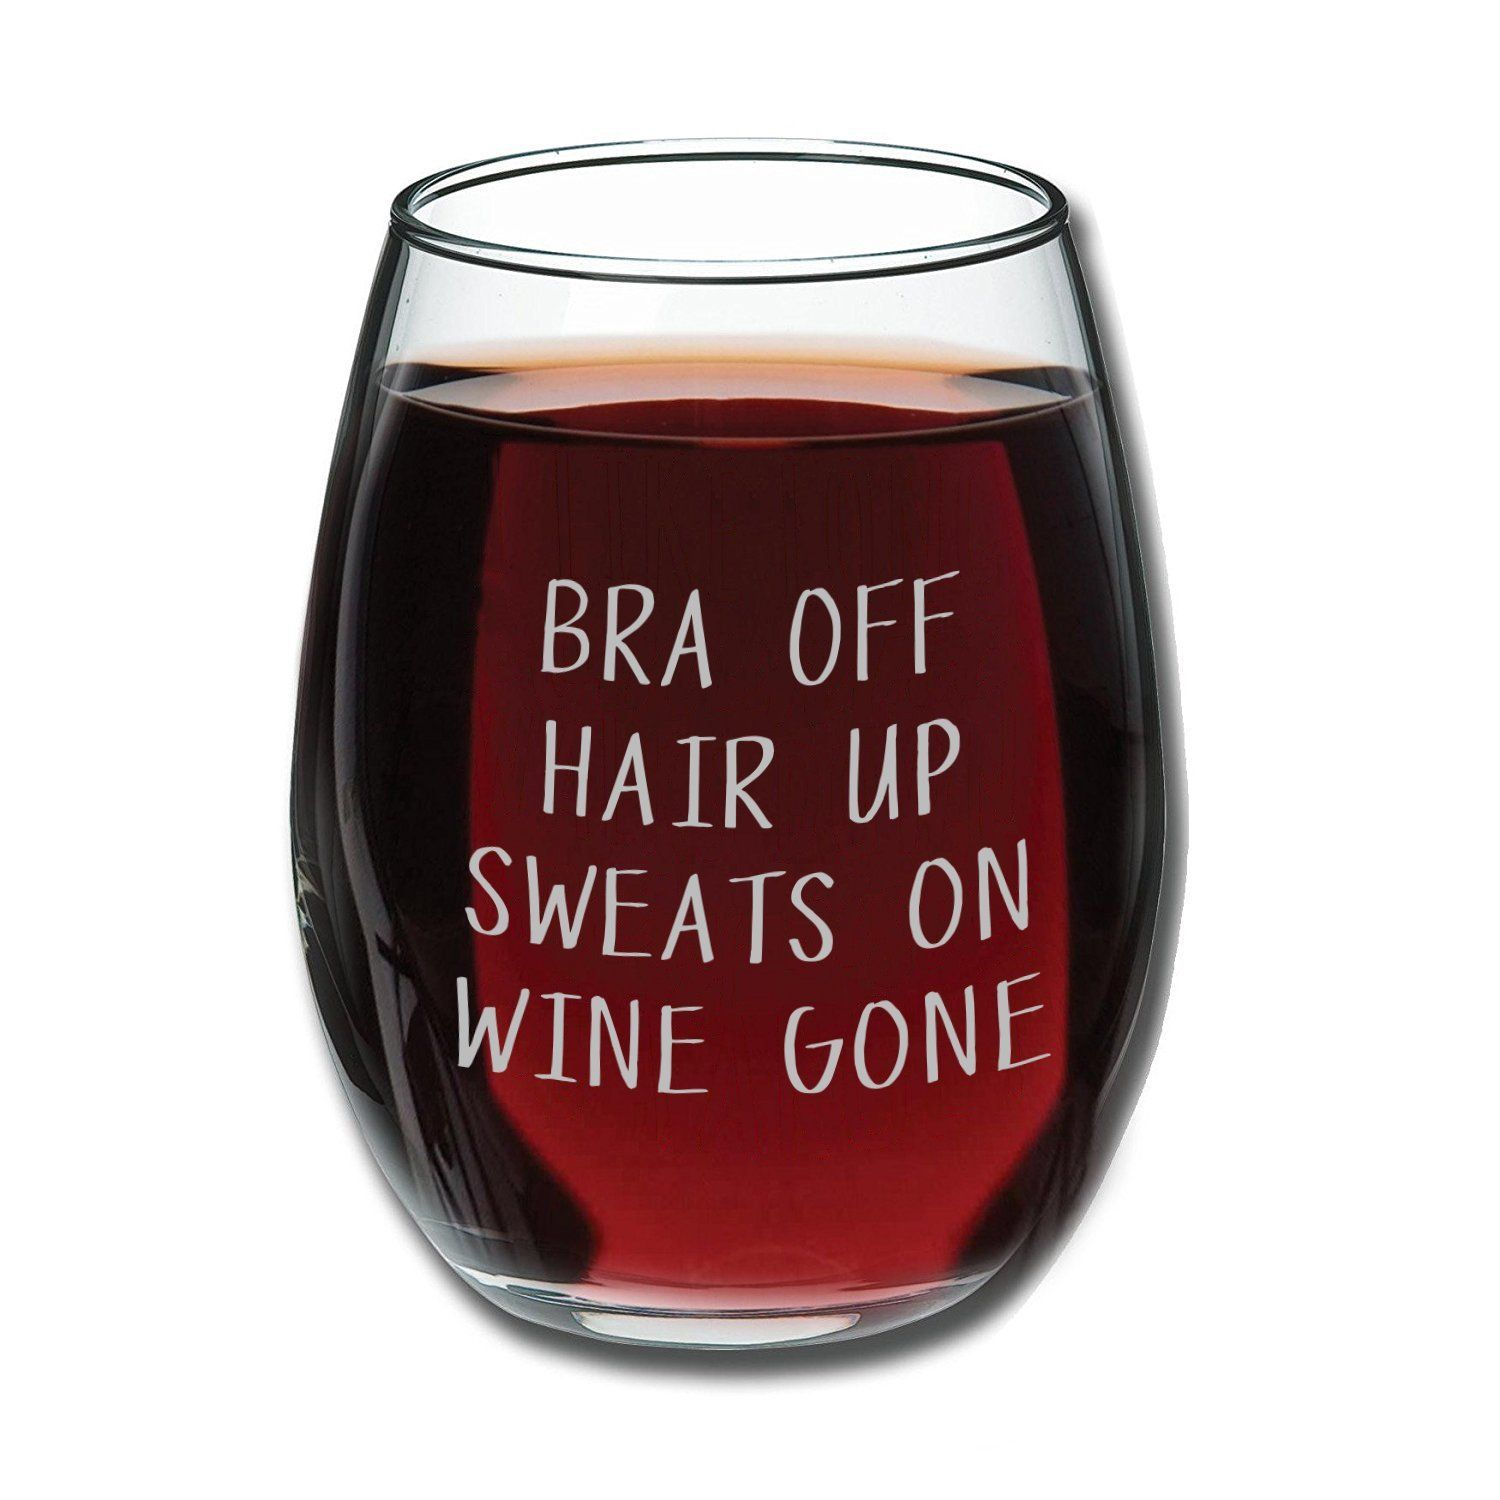 Amazon Com Bra Off Hair Up Sweats On Wine Gone Funny 15oz Wine Glass Unique Christmas Gift Idea Funny Wine Glass Gifts For Wine Lovers Stemless Wine Glass